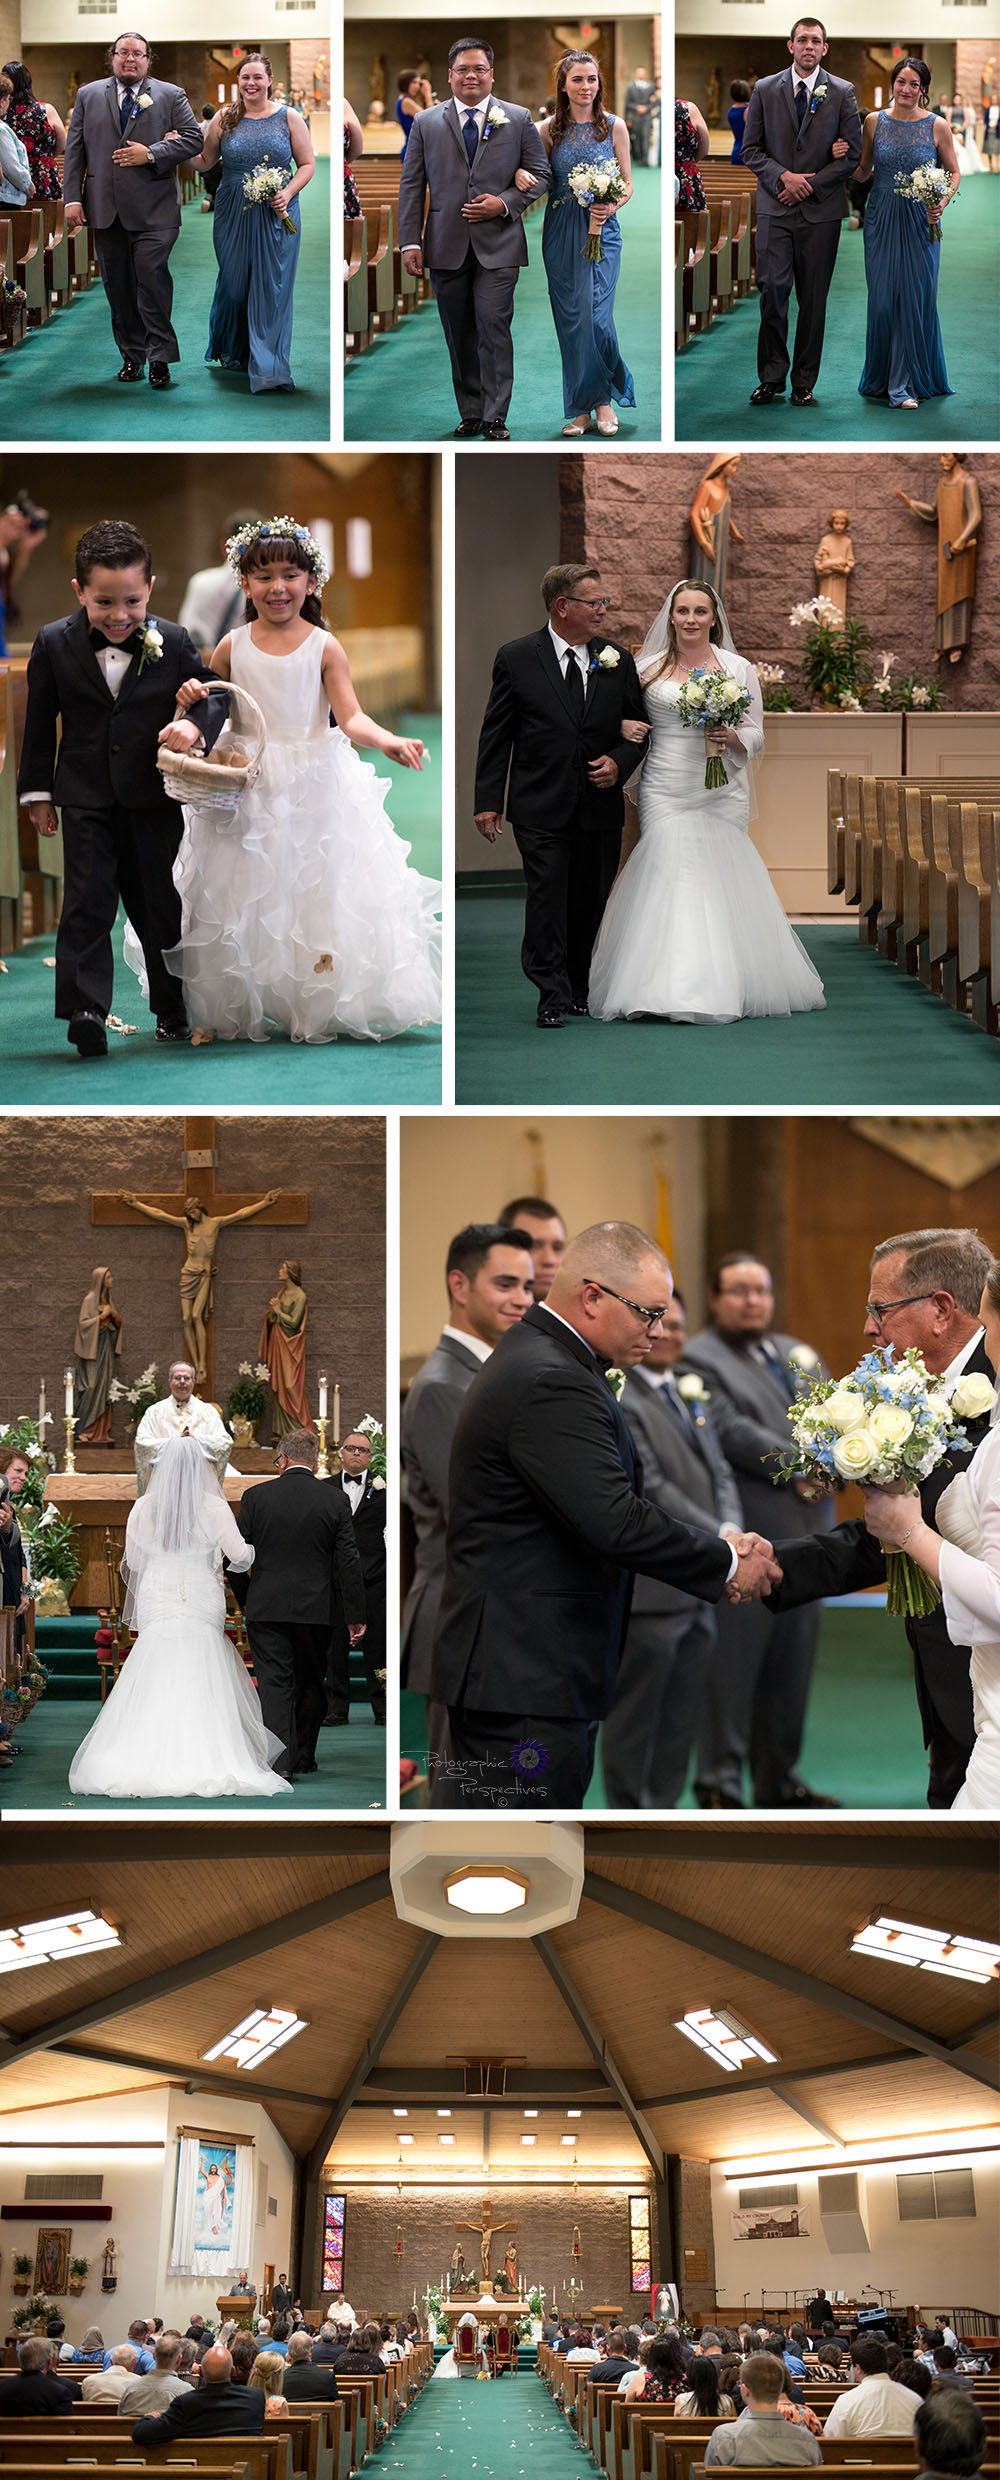 St. Thomas Aquinas Catholic Church | Albuquerque Wedding Photographers | Photographic Perspectives